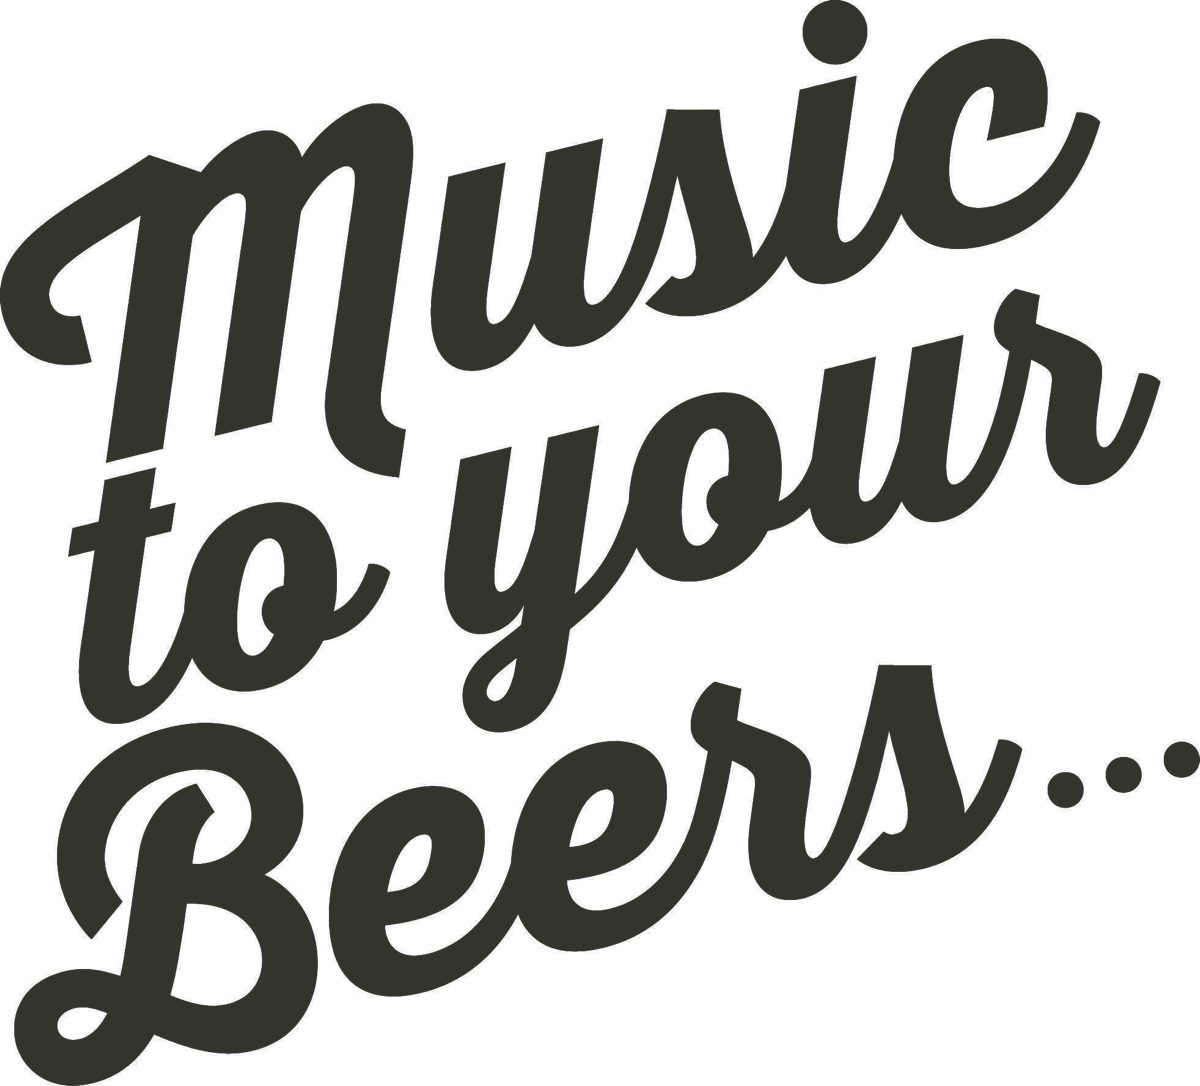 music-to-your-beers-01.png?auto=compress%2Cformat&ixlib=php-1.2.1